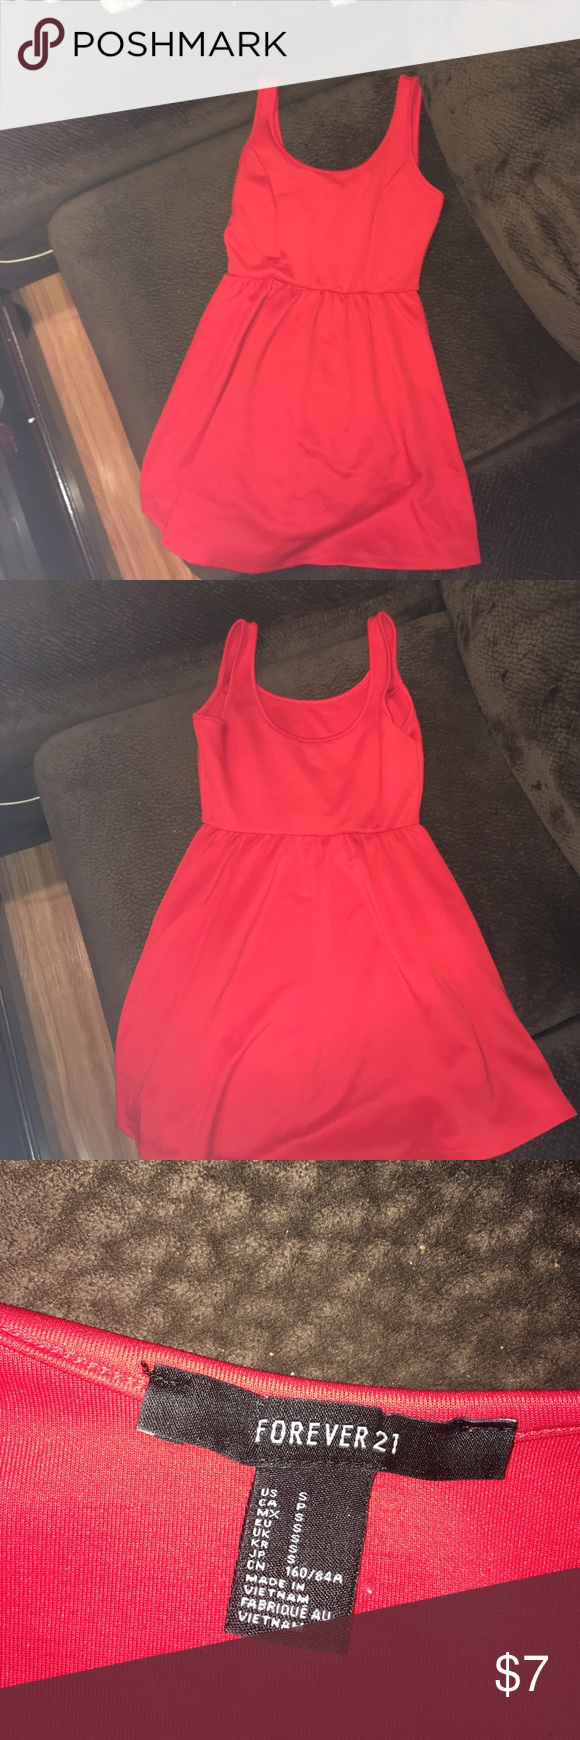 Forever 21 Dress Red forever 21 small stretchy red mini dress. Forever 21 Dresses Mini